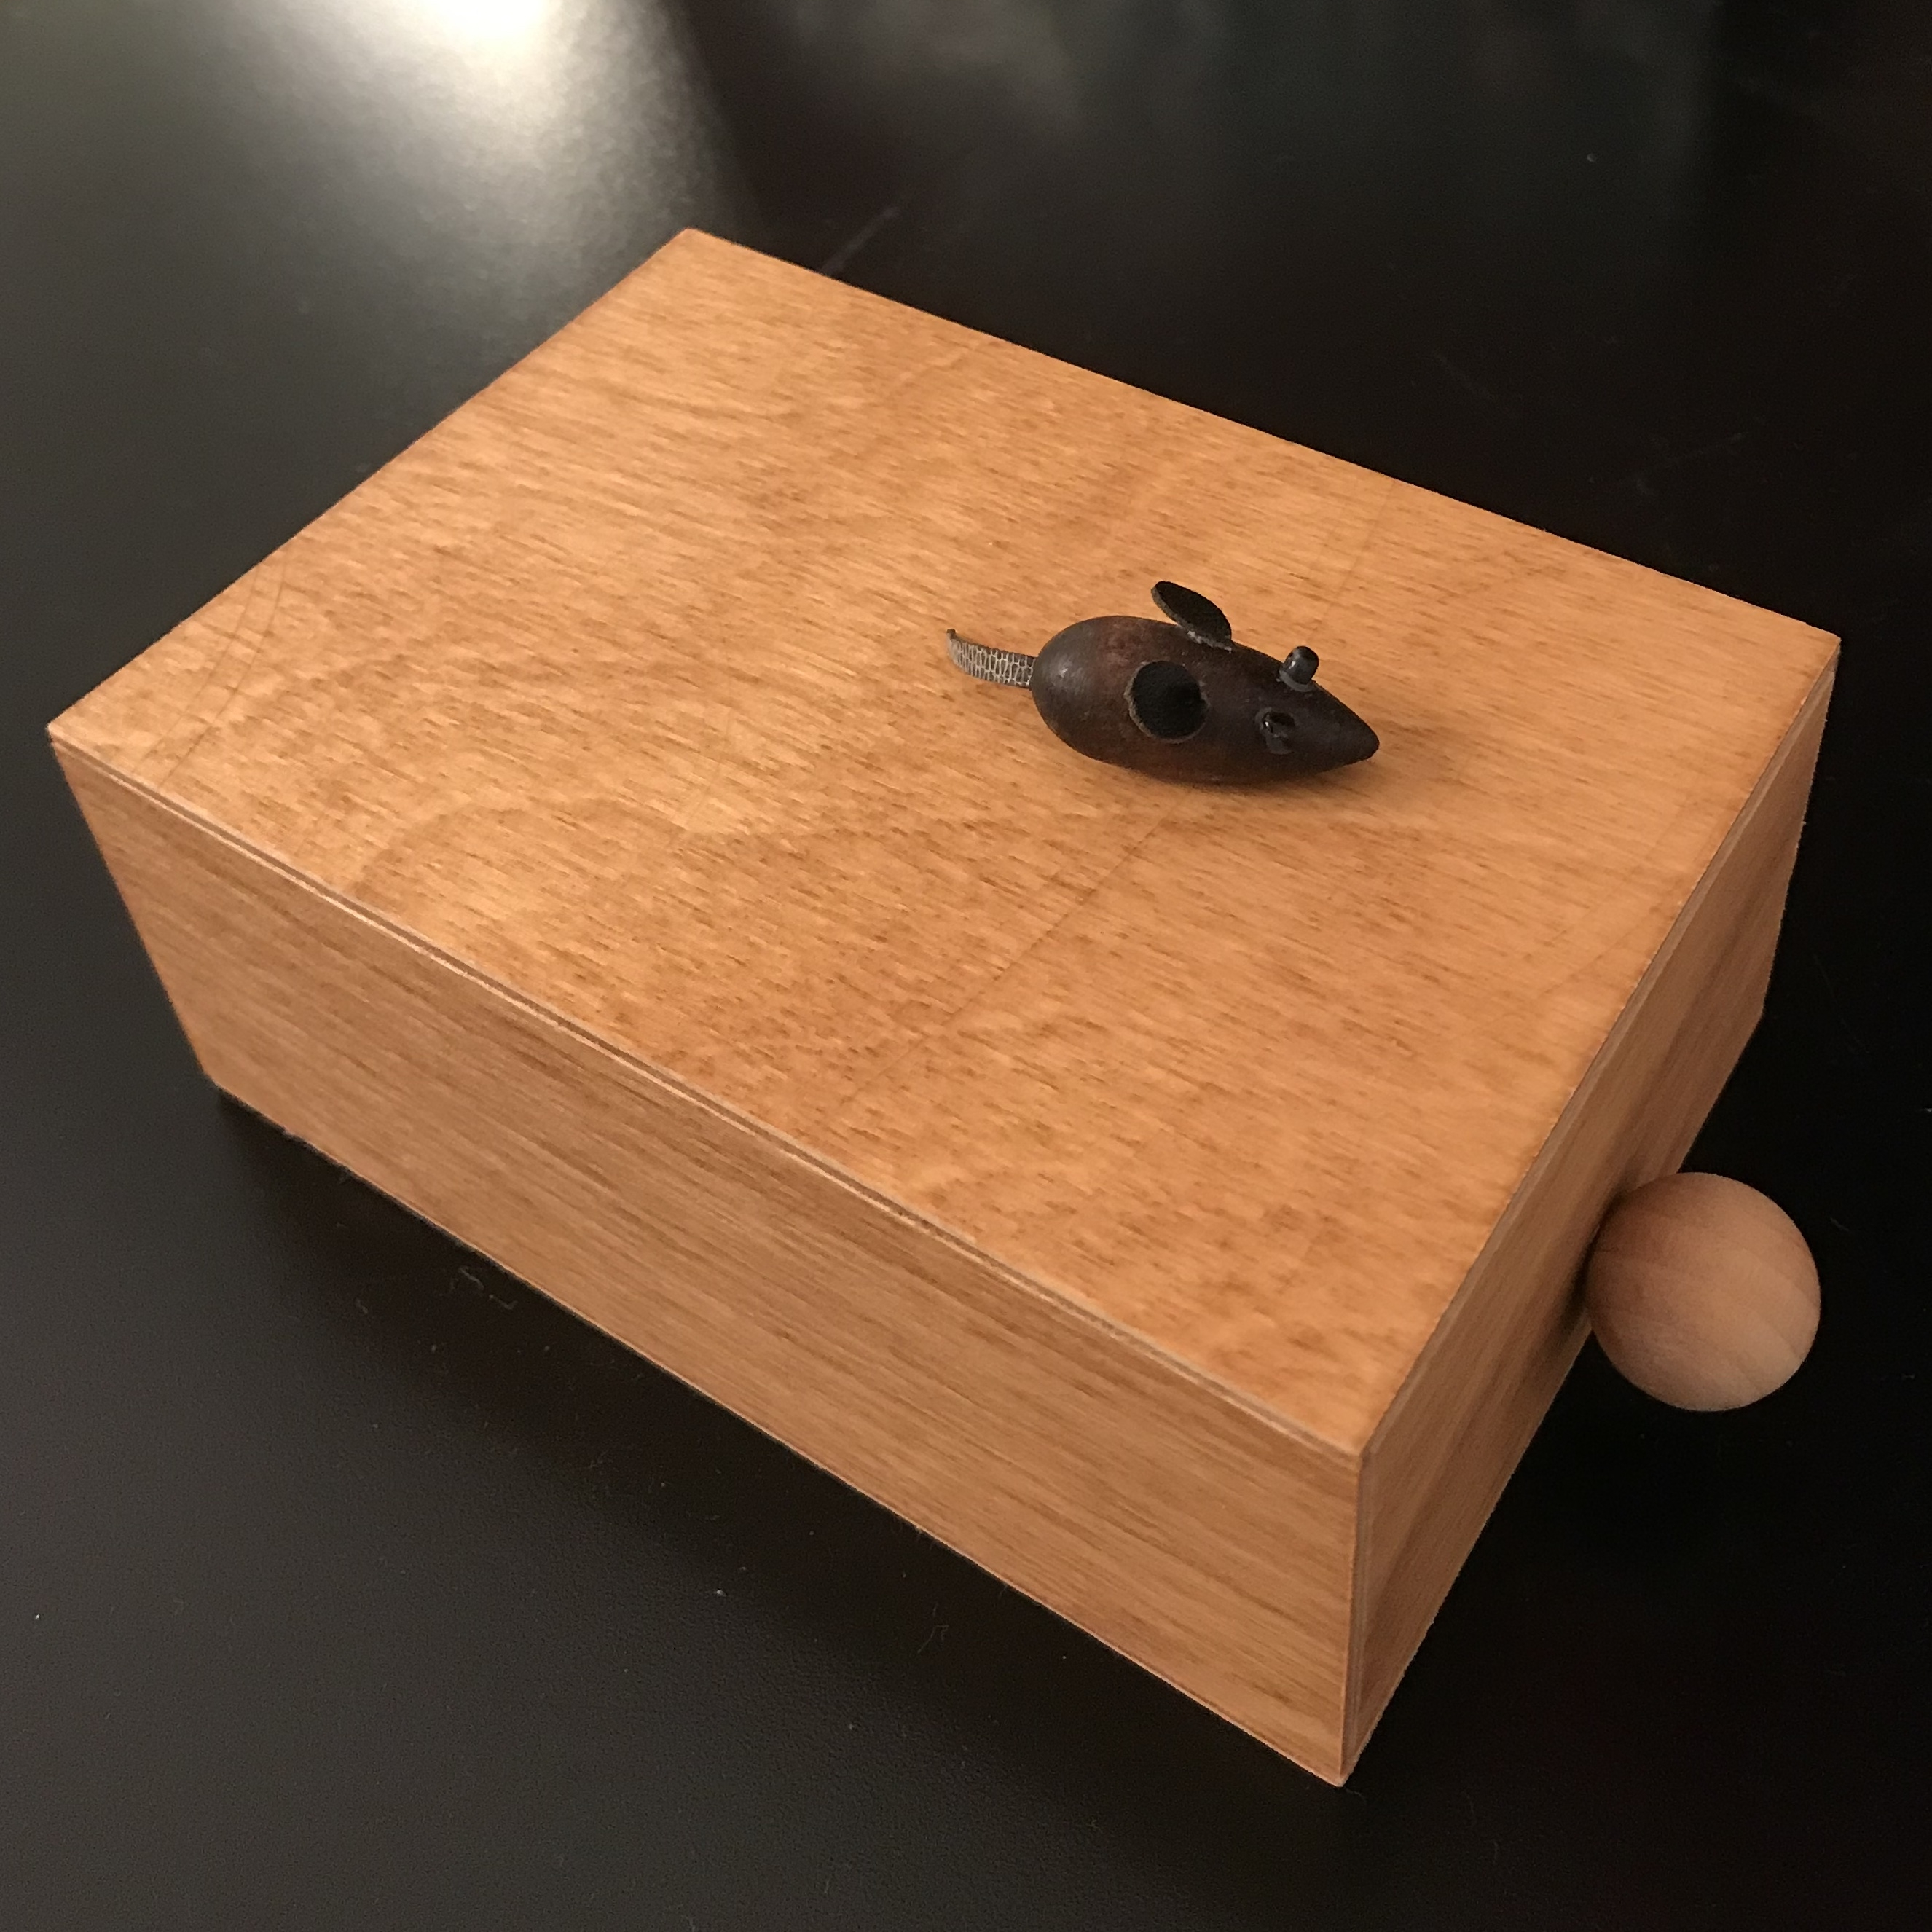 Of Mice and mazes designed, manufactured and exchanged by Thomas Beutner at IPP38 in San Diego